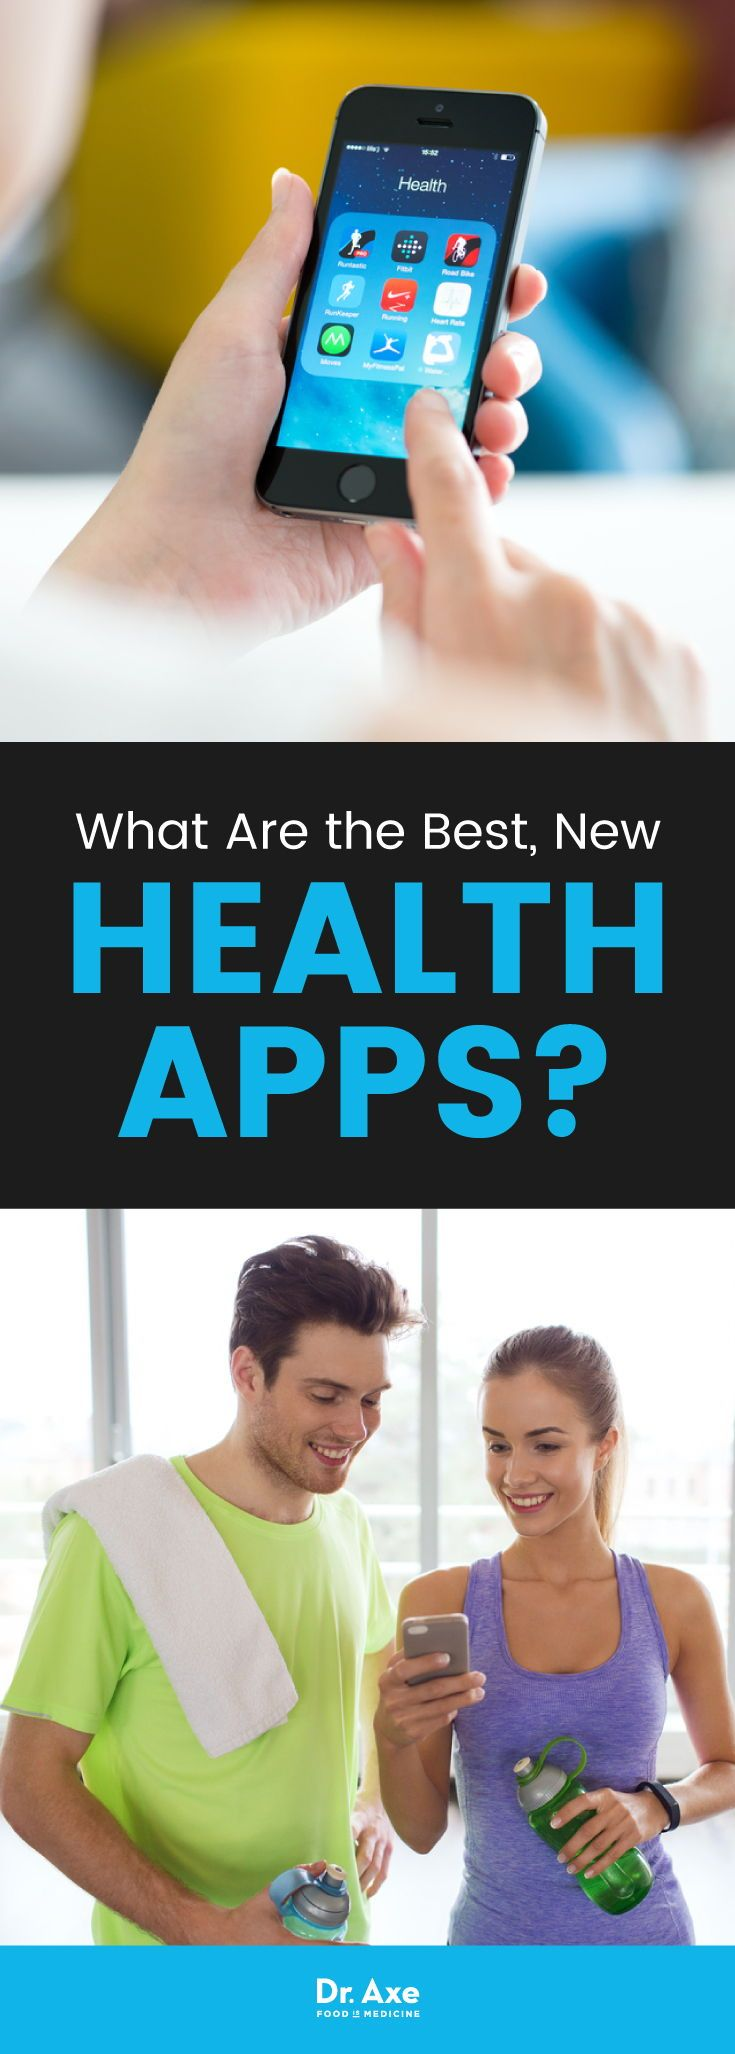 Want to stay up to date on the best fitness apps and health apps of 2018? I've compiled a list of 15 easy-to-use apps to help you on your health journey.